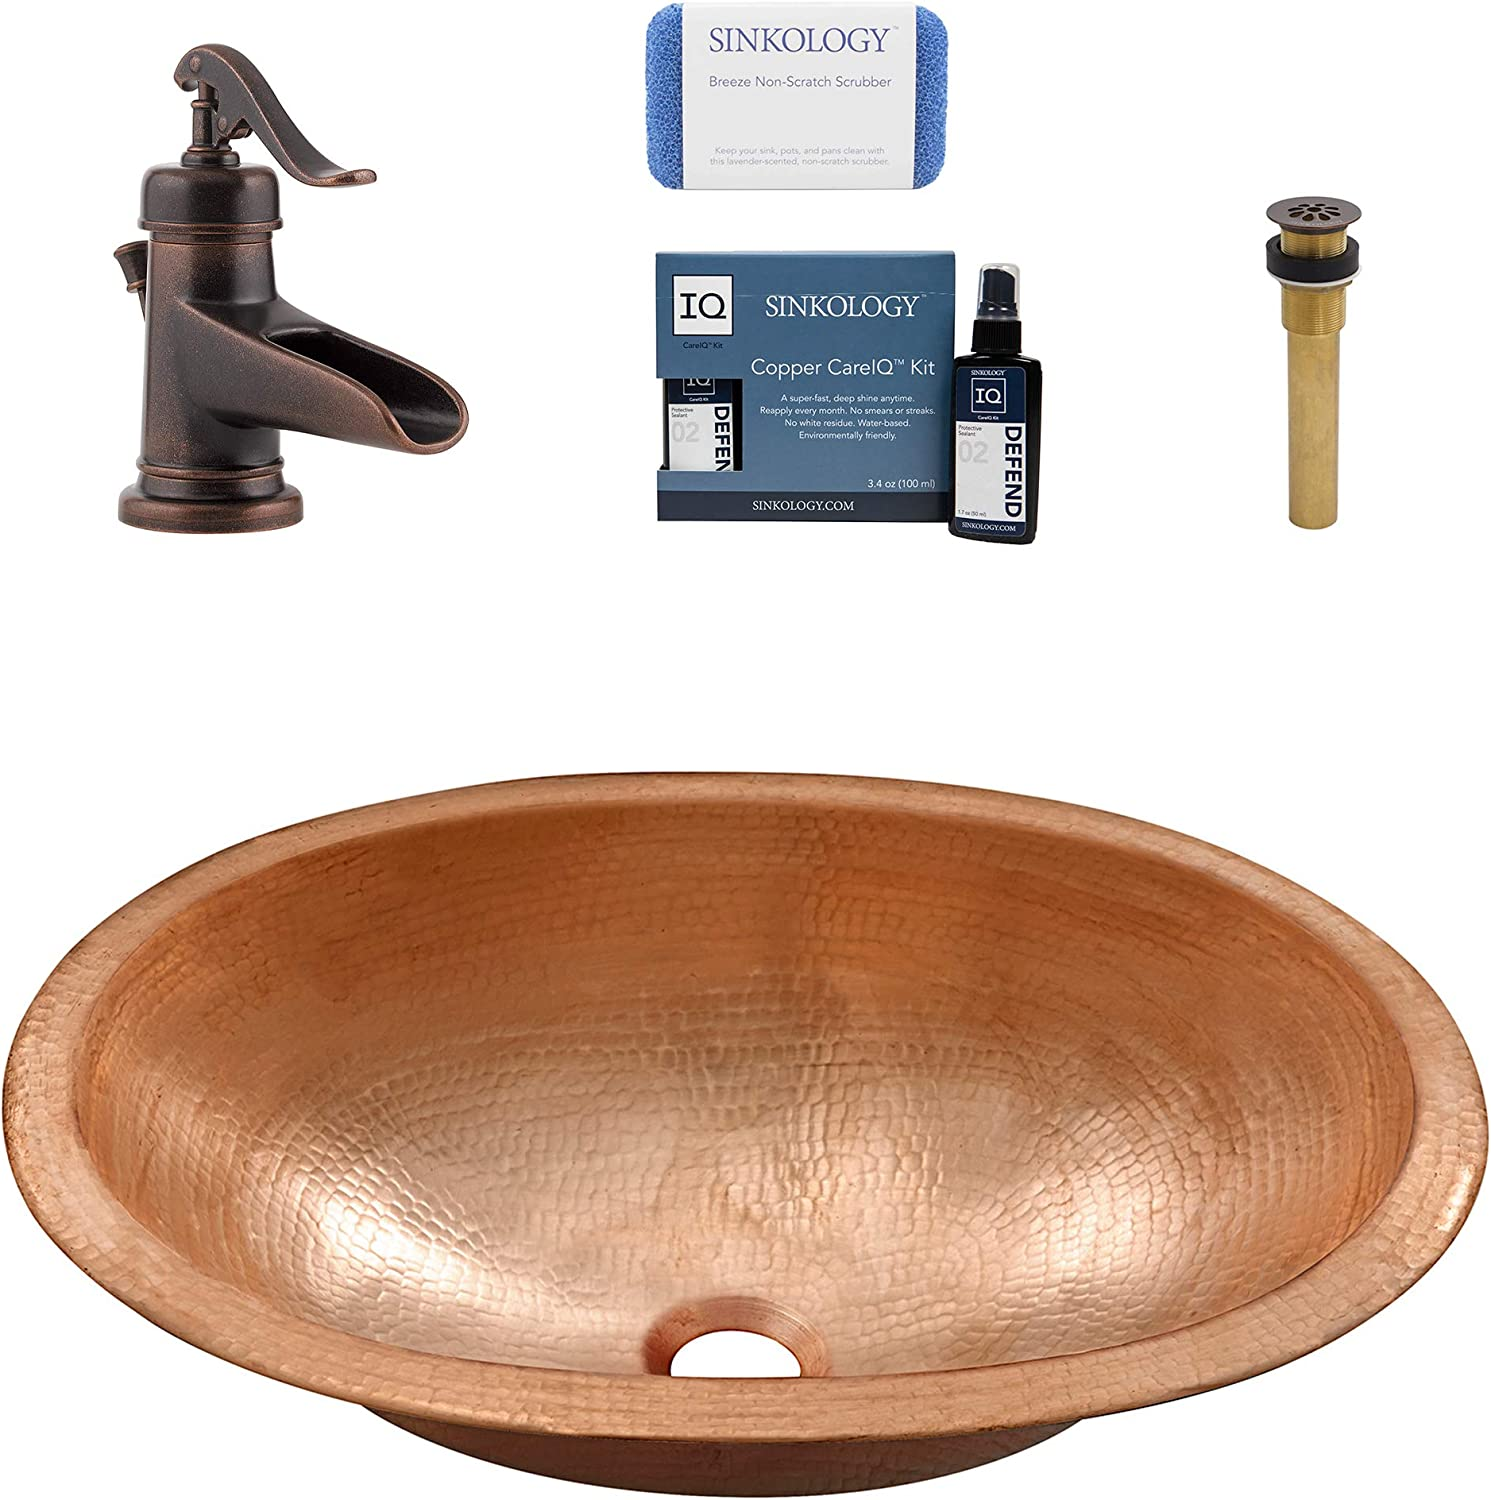 Sinkology SB202-19NU-F042-AMZ Strauss Undermount or Drop-in Copper Bath Sink Pfister Ashfield Faucet and Drain Bathroom All-in-One Kit Naked